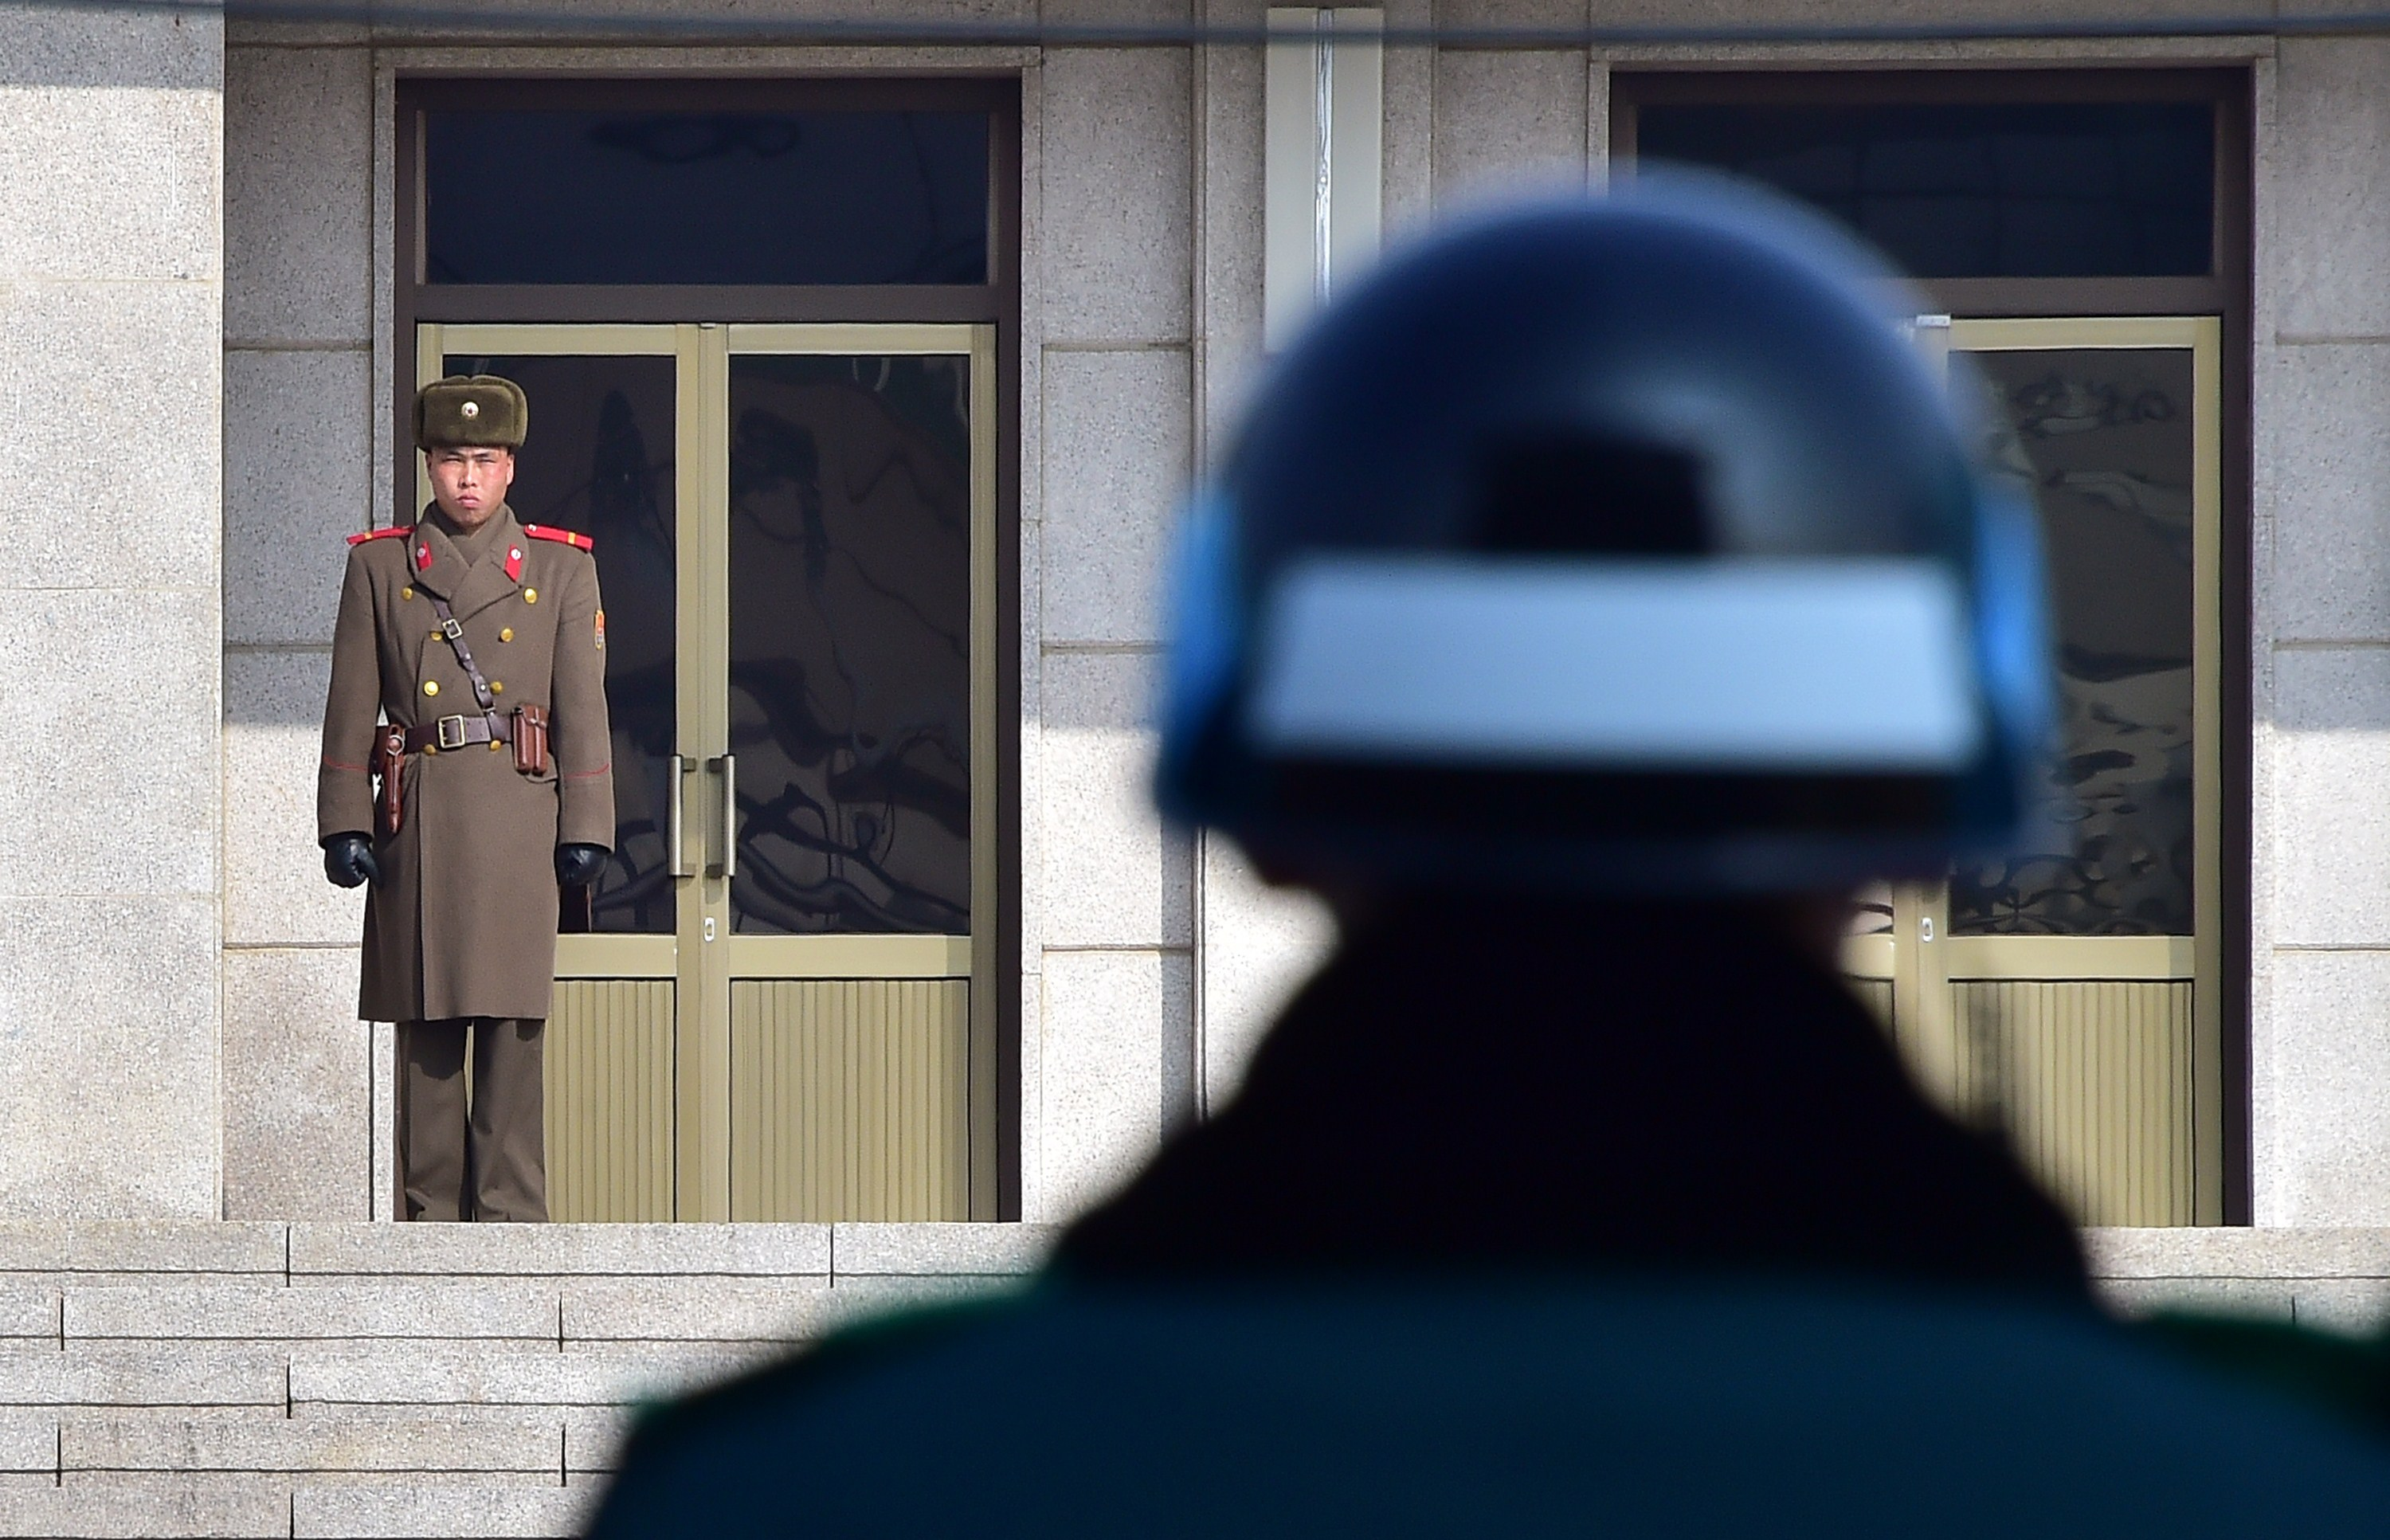 A North Korean soldier (L) and a South Korean soldier (R) stand opposite each other at the truce village of Panmunjom in the Demilitarized Zone dividing the two Koreas. (Jung Yeon-Je/AFP/Getty Images)